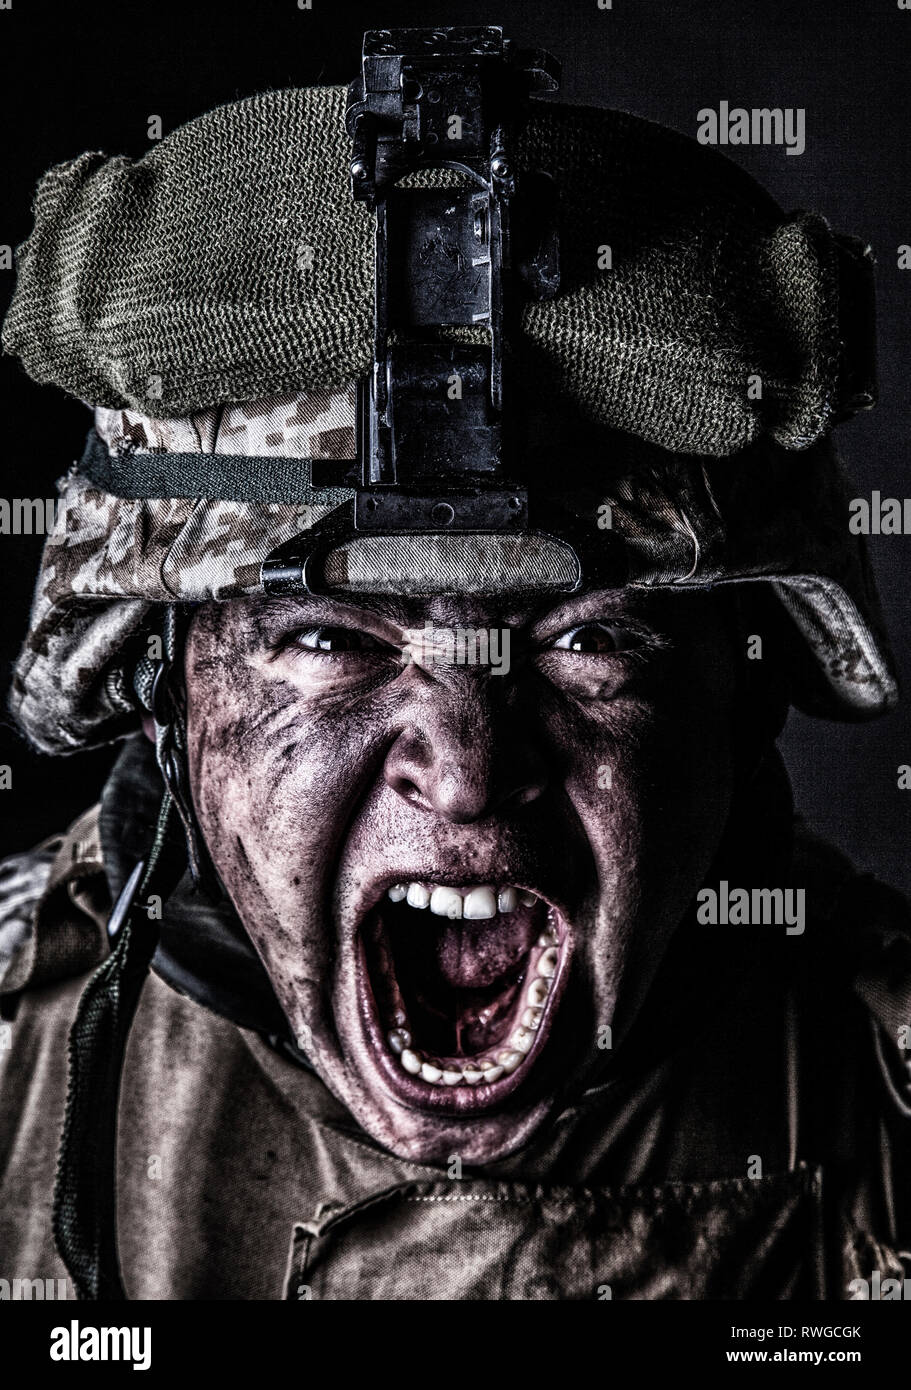 Close-up portrait of an aggressive U.S. Army soldier screaming loudly. - Stock Image